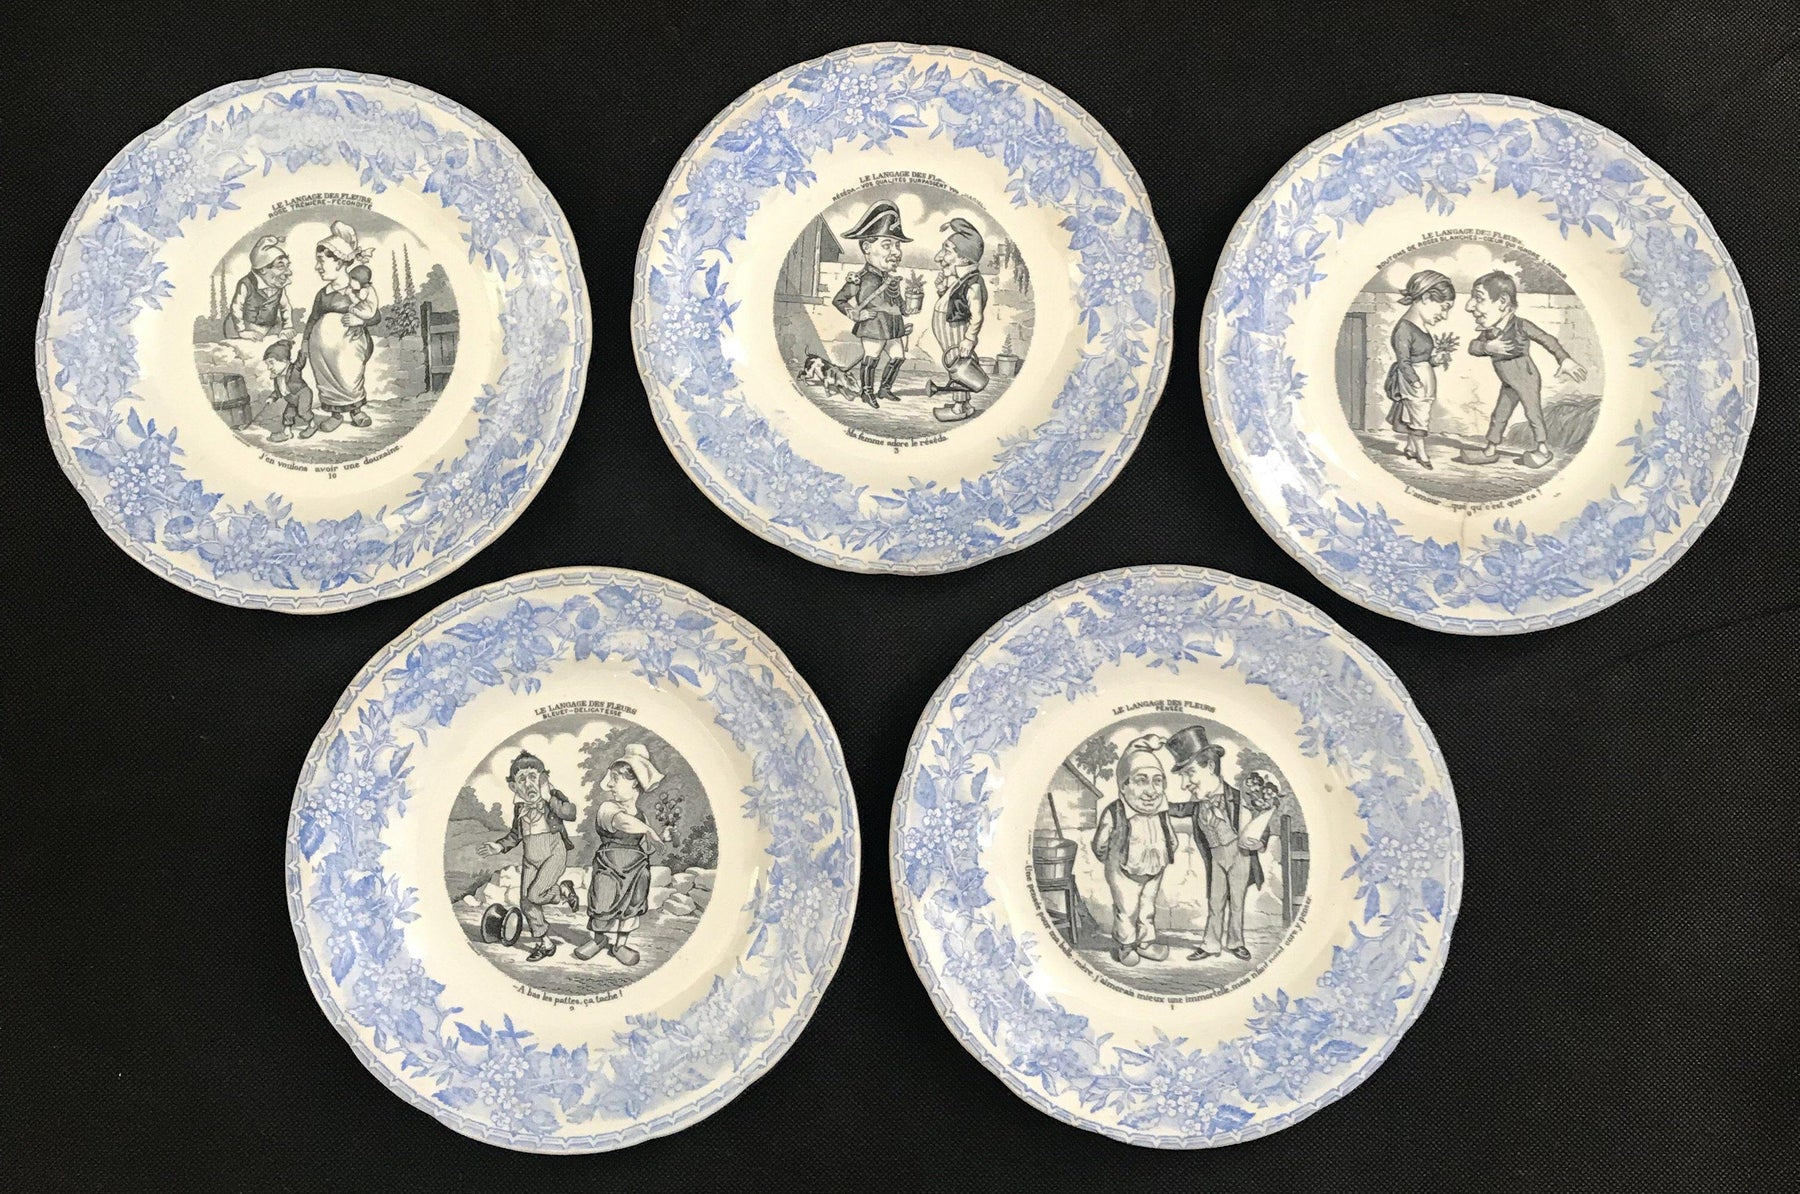 Set of Five French Plates - Language of Flowers/Le Langage des Fleurs - Humorous! for sale